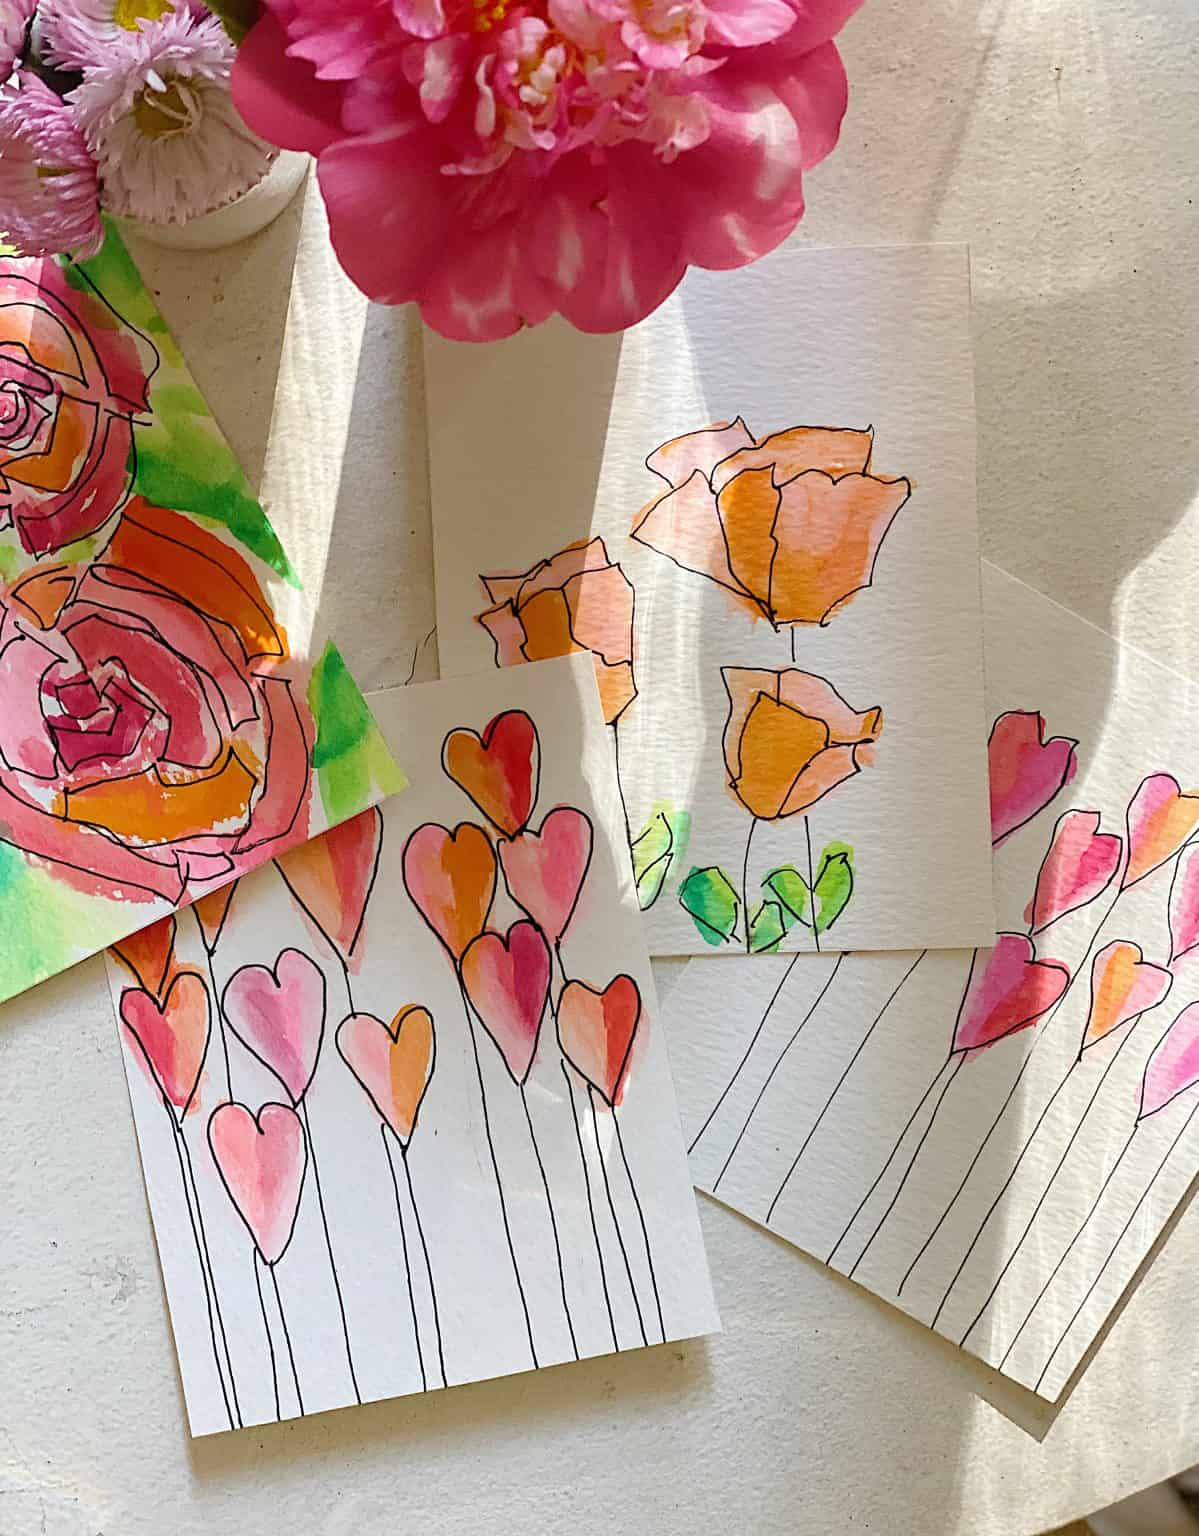 watercolor cards with flowers and hearts